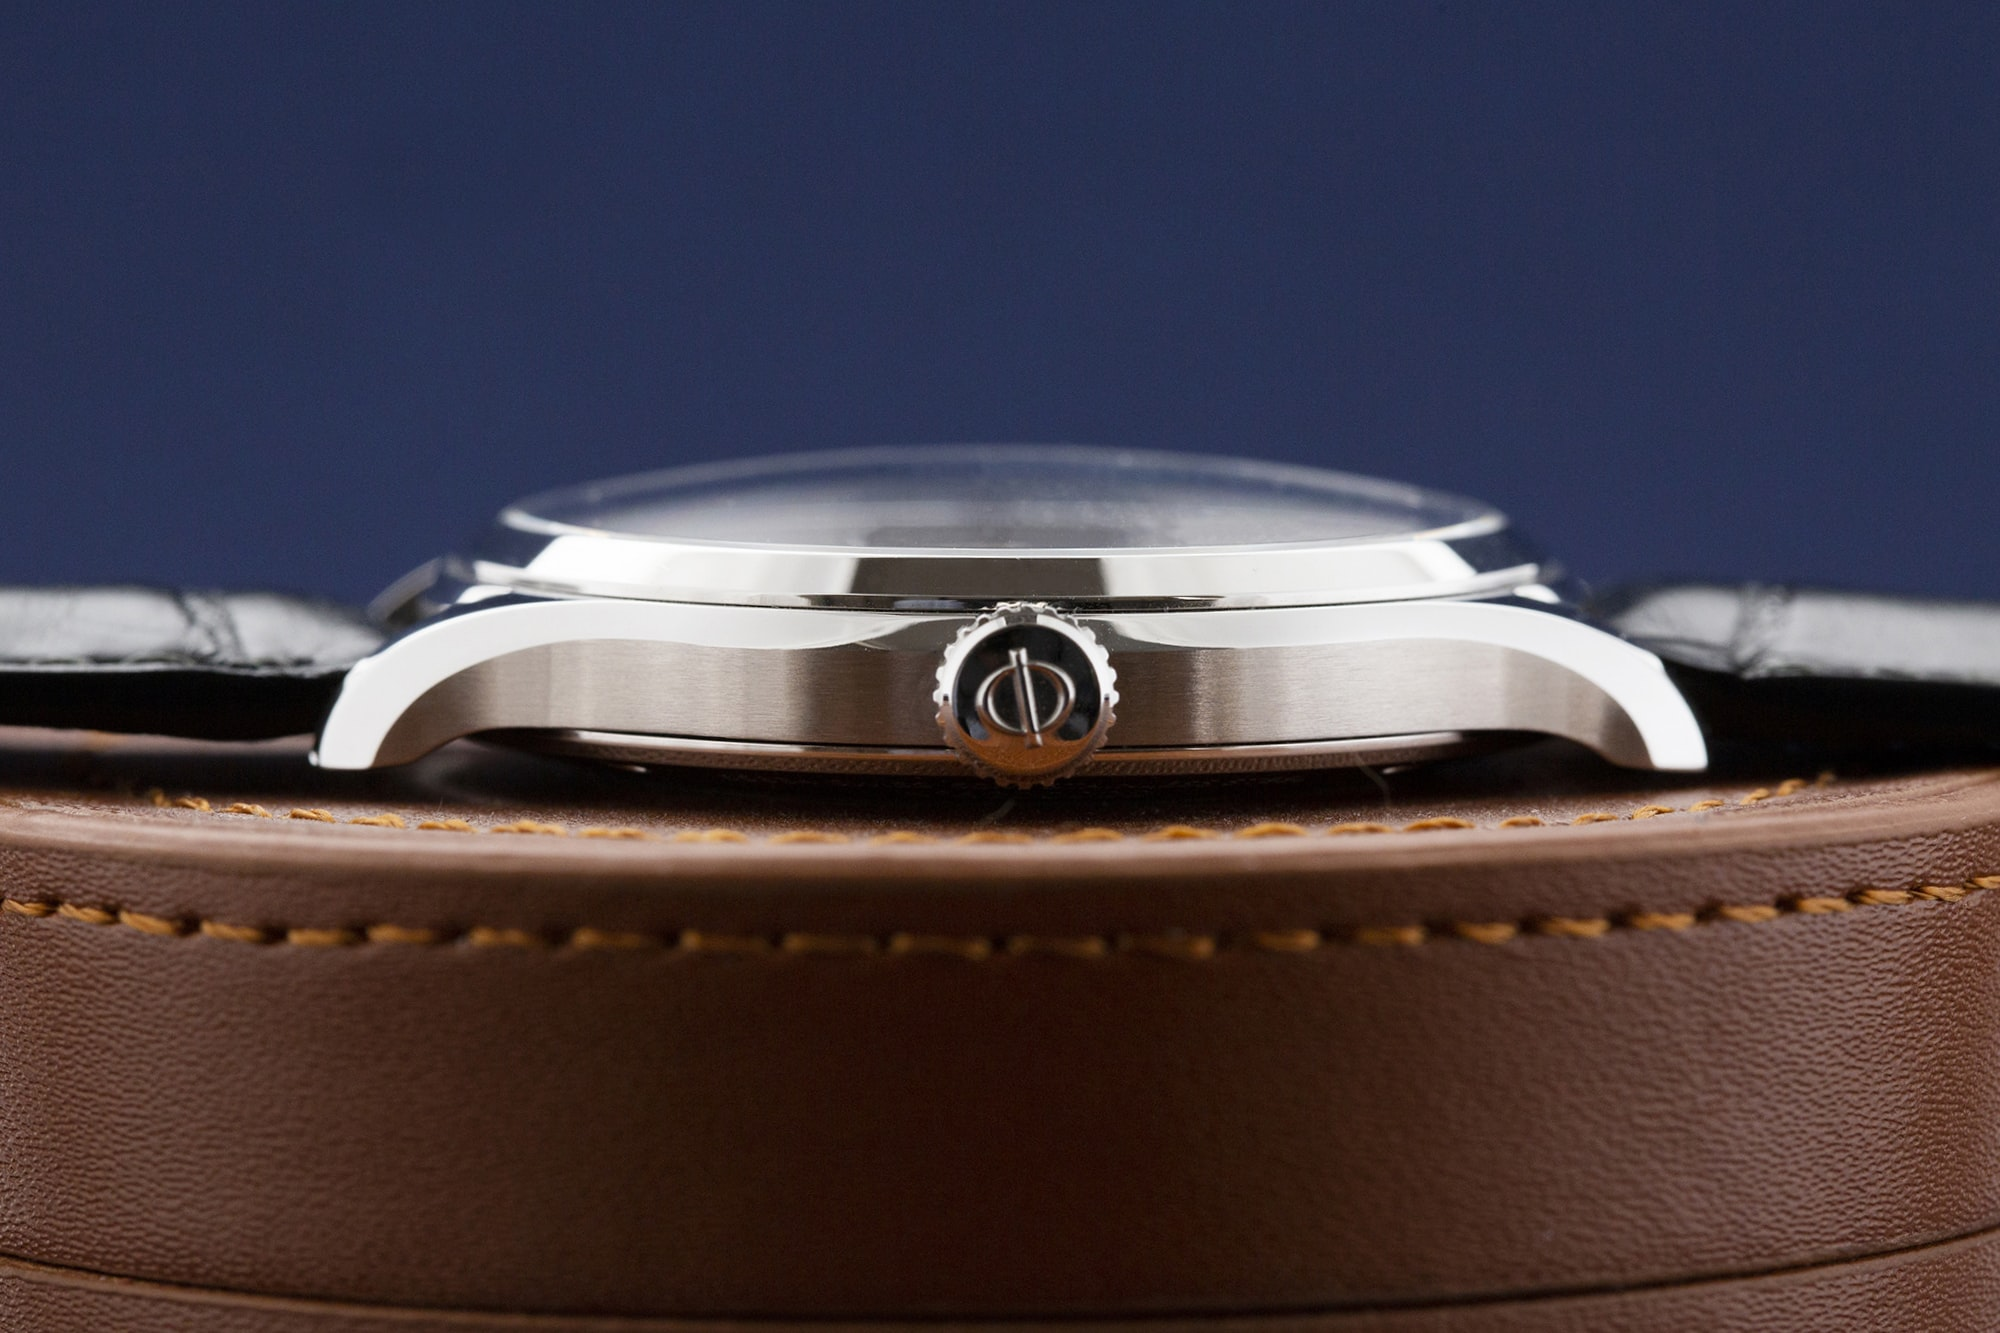 A Week On The Wrist: The Baume & Mercier Clifton Baumatic COSC rrr